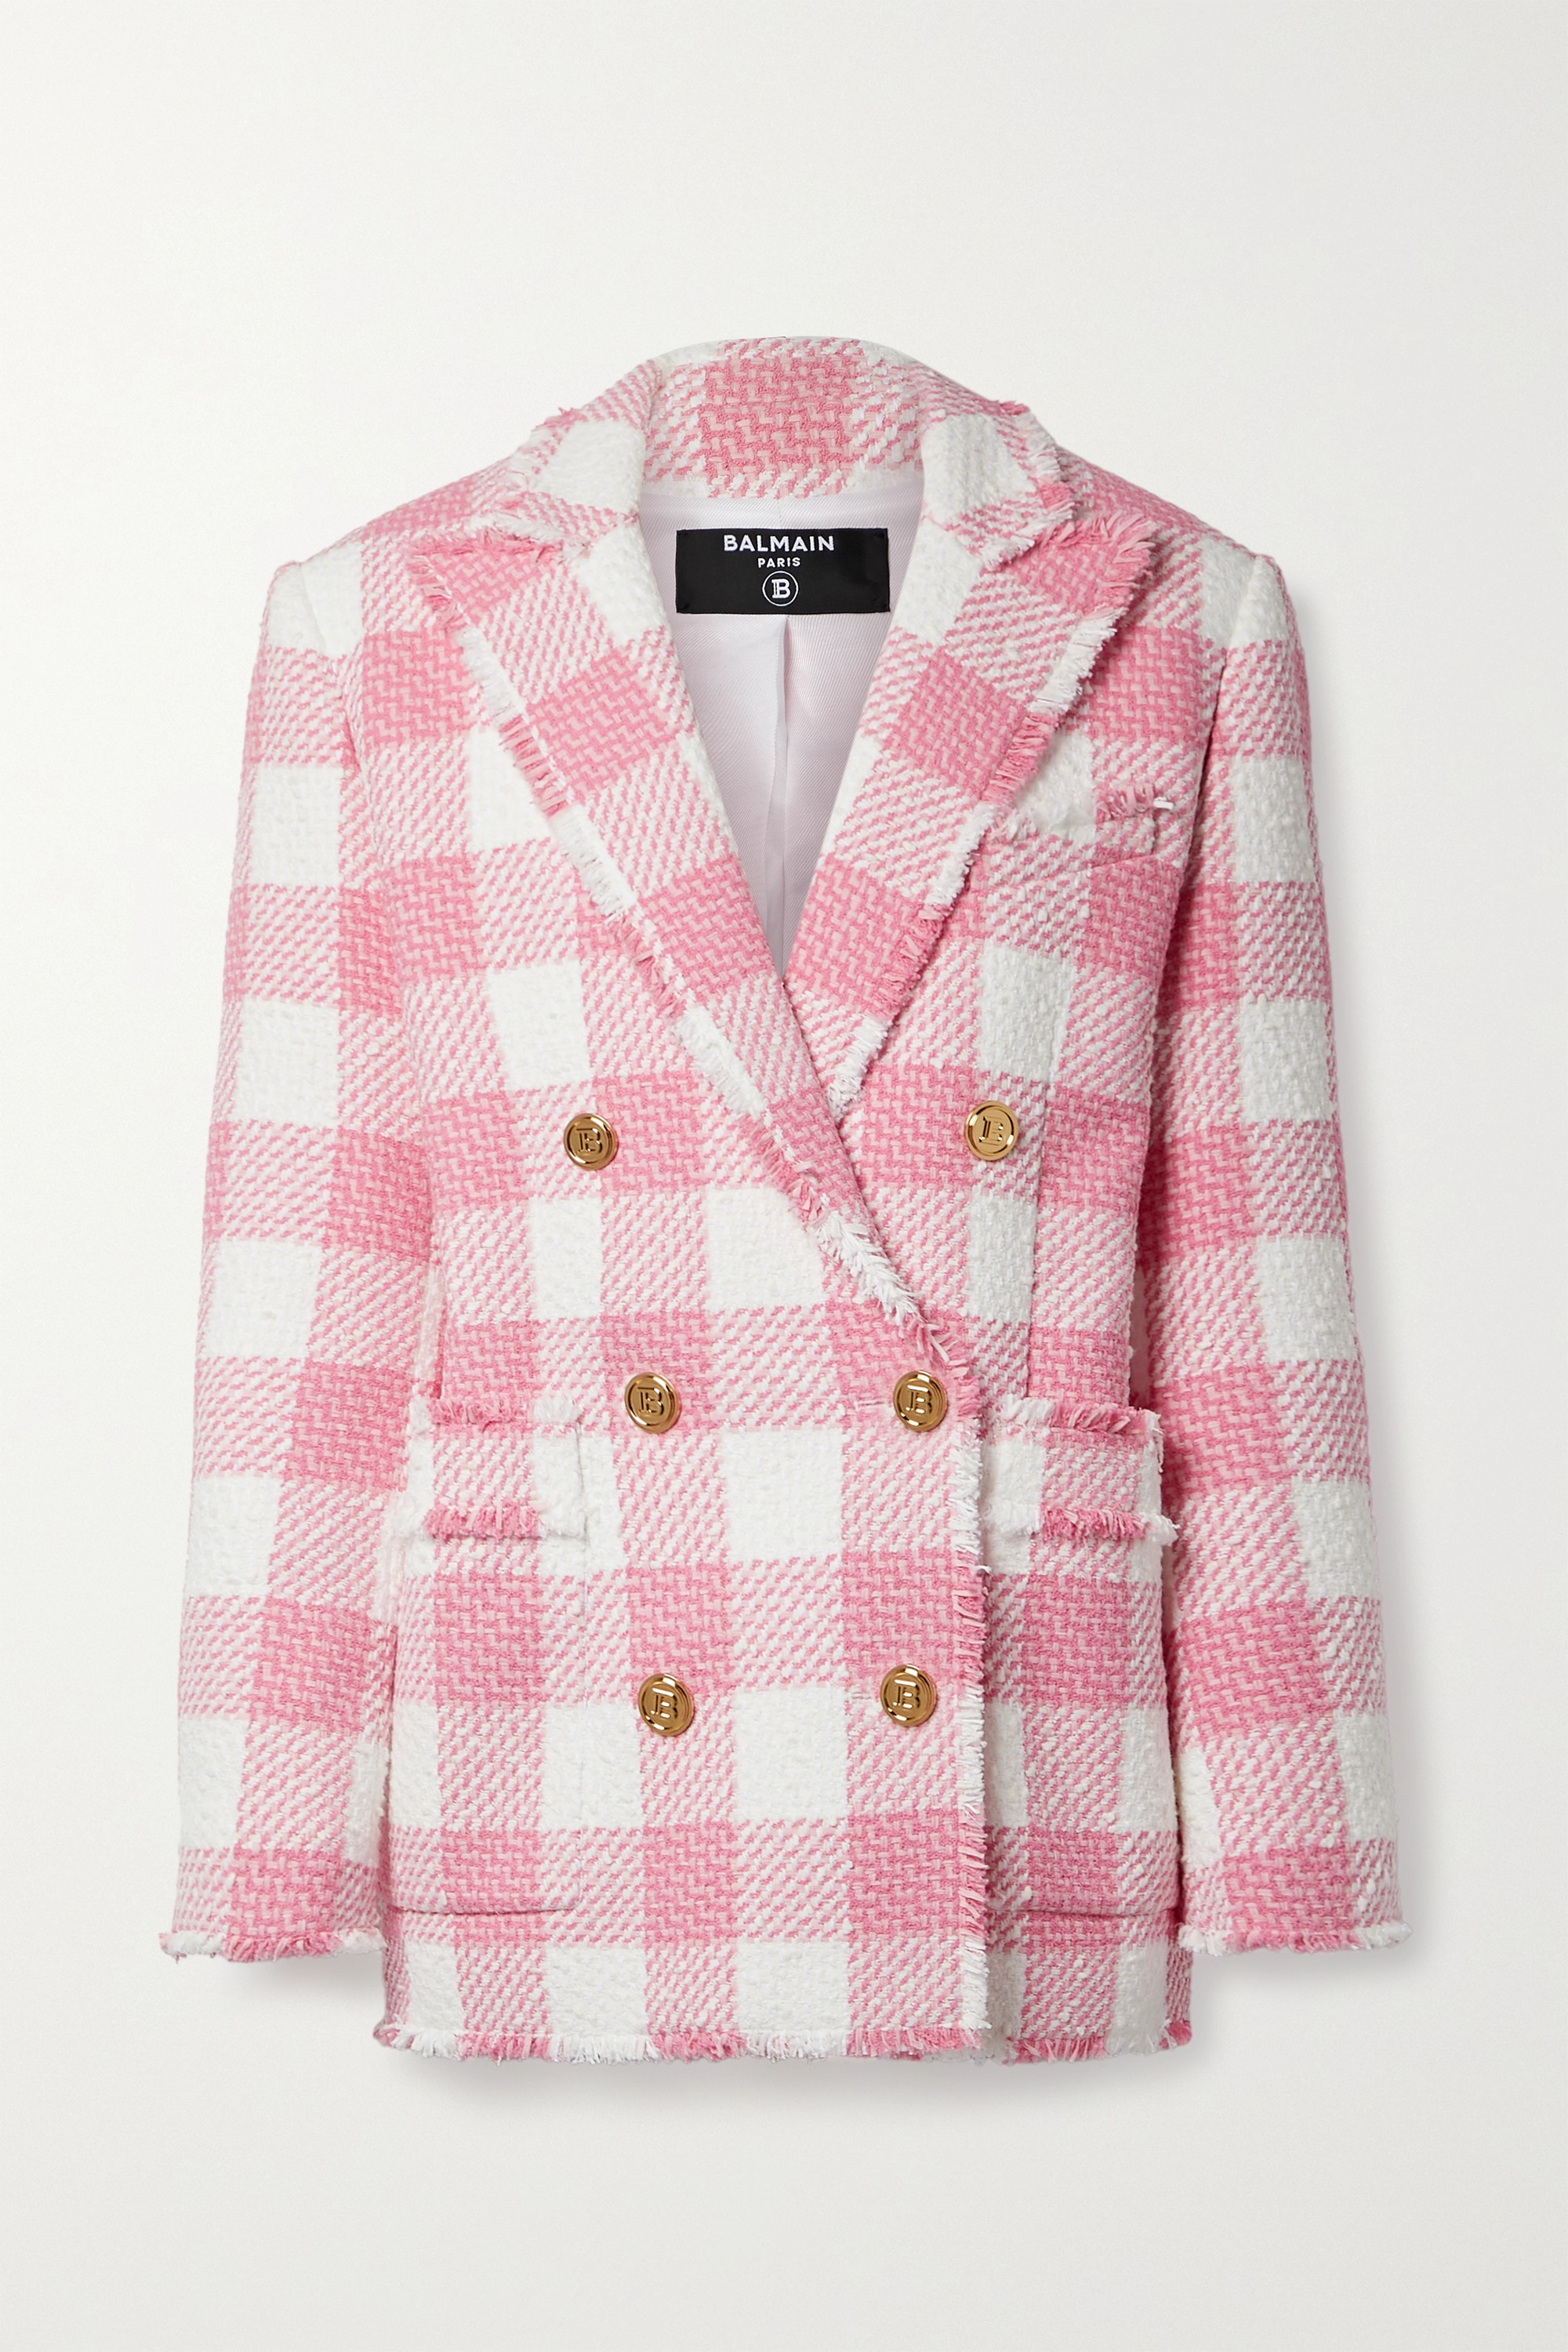 Balmain Double-breasted fringed gingham cotton-blend tweed blazer